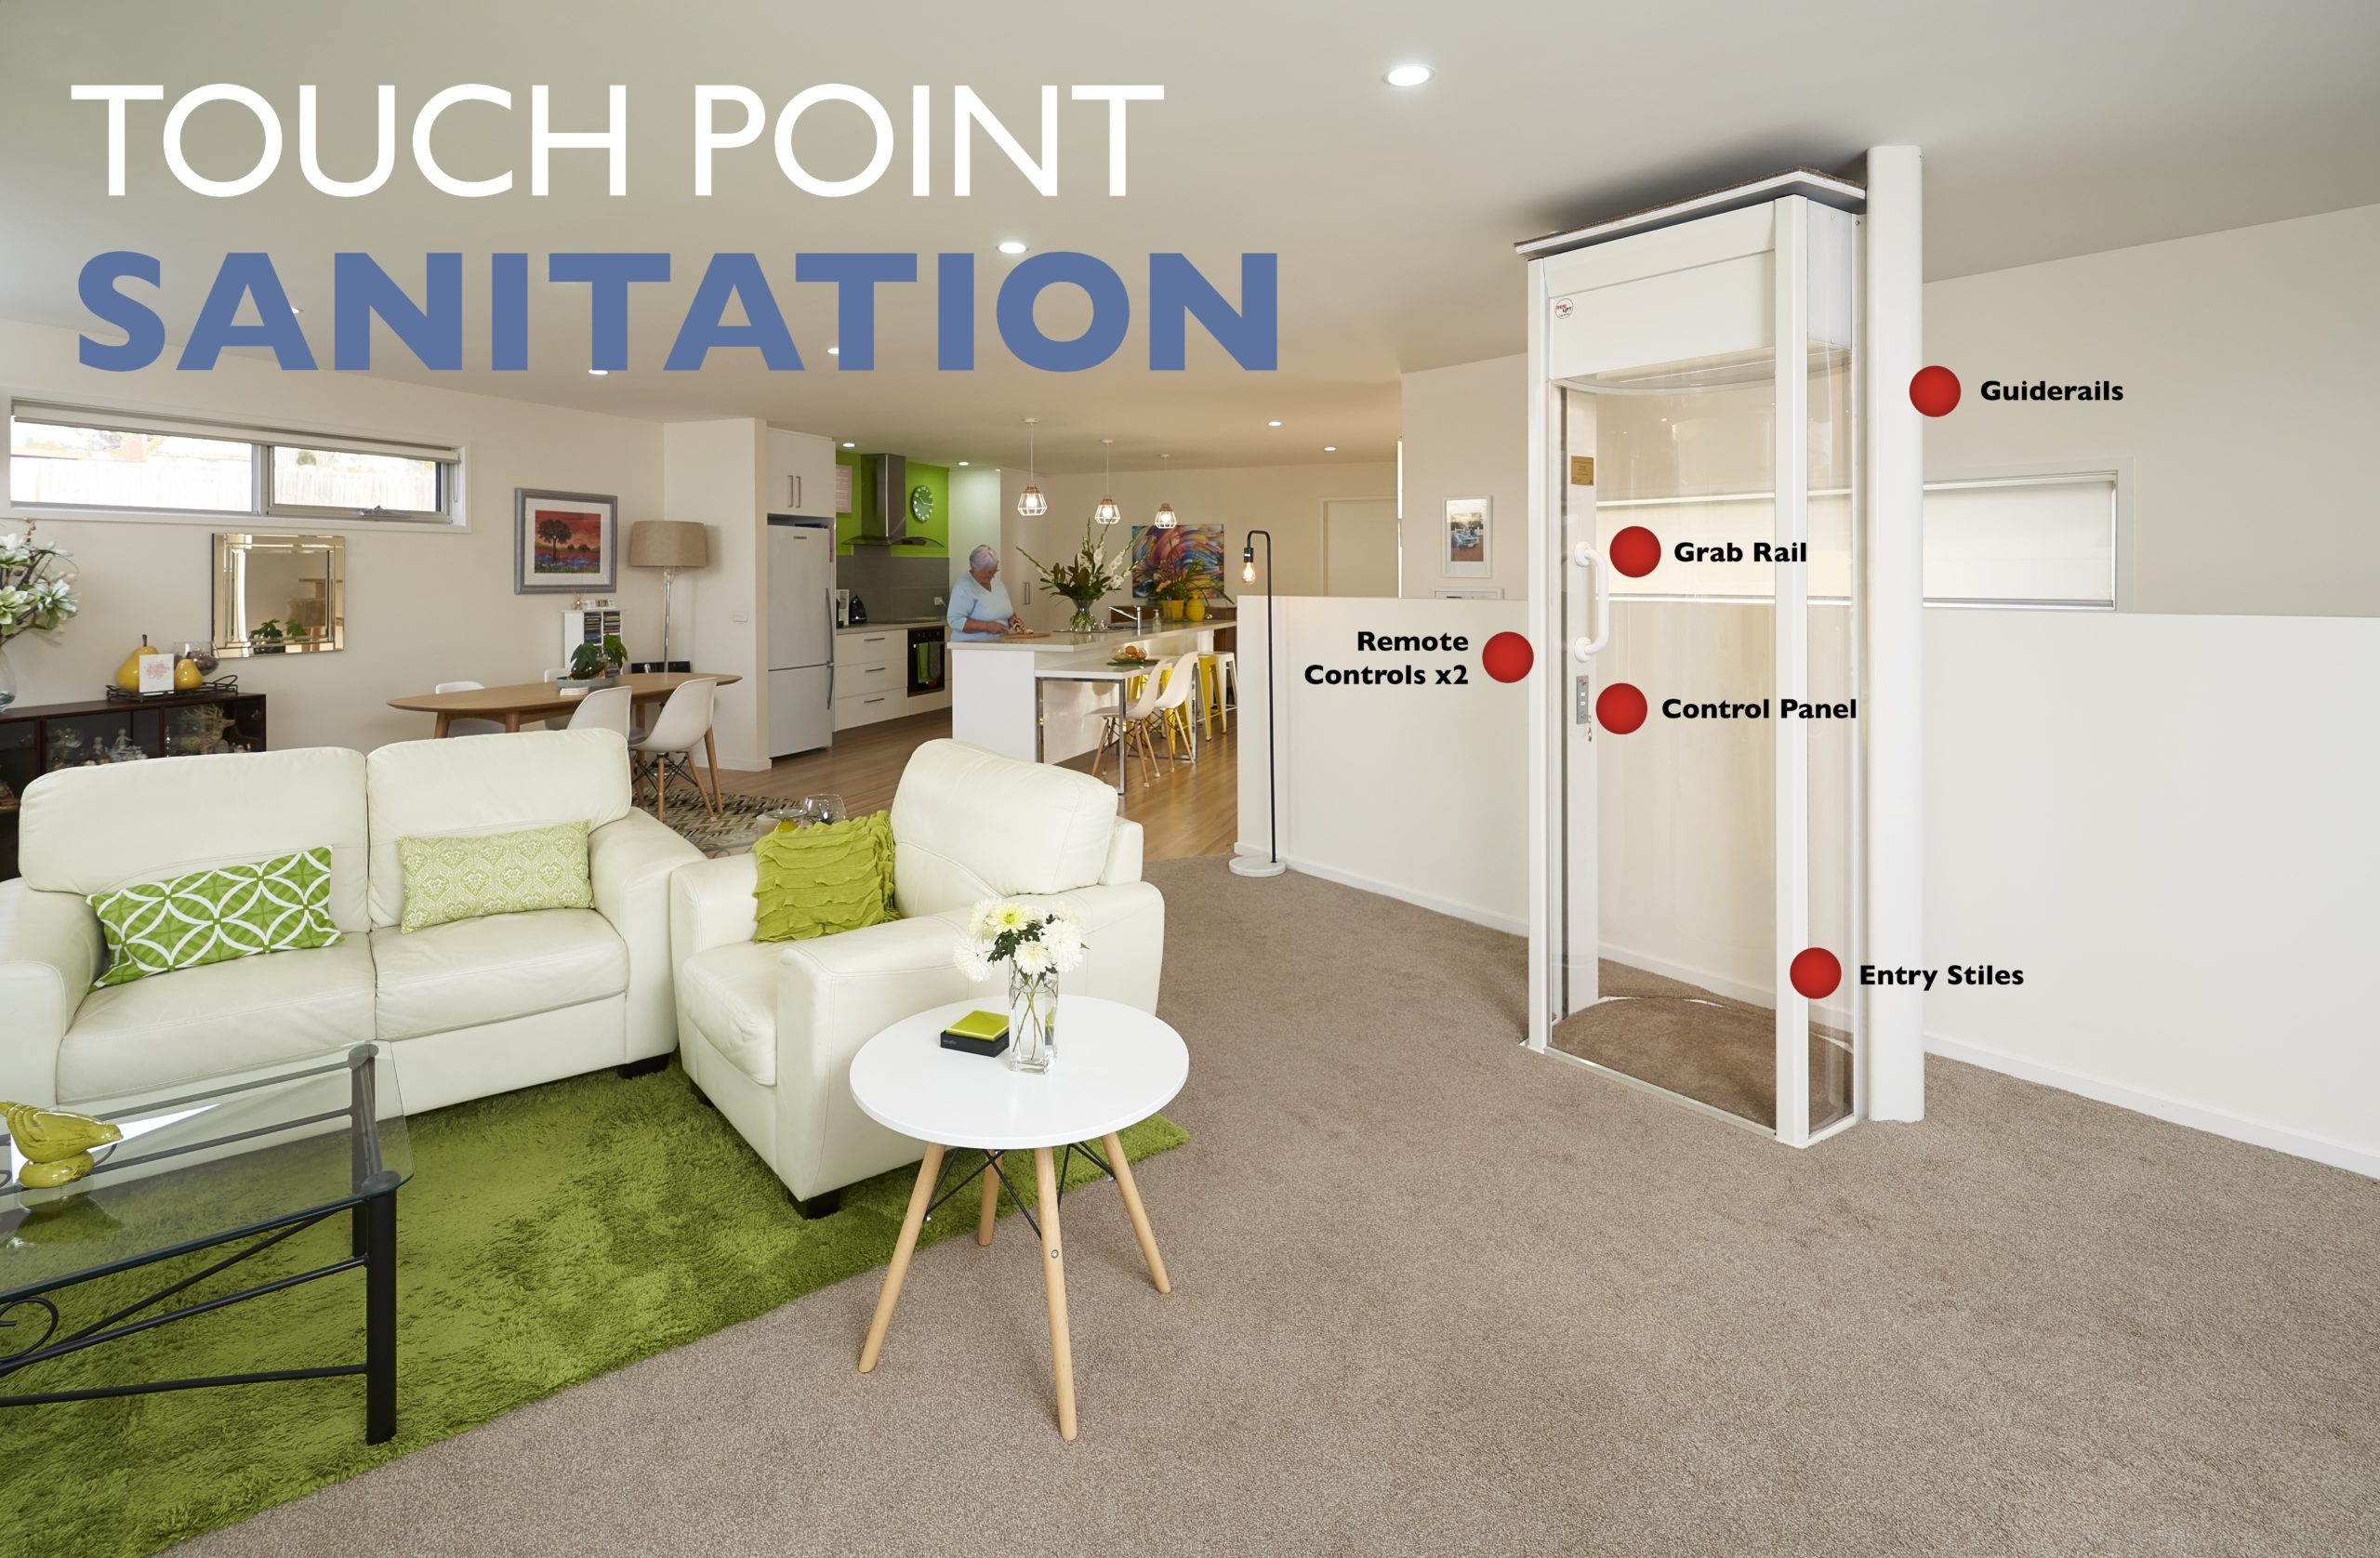 Covid touch points sanitisation